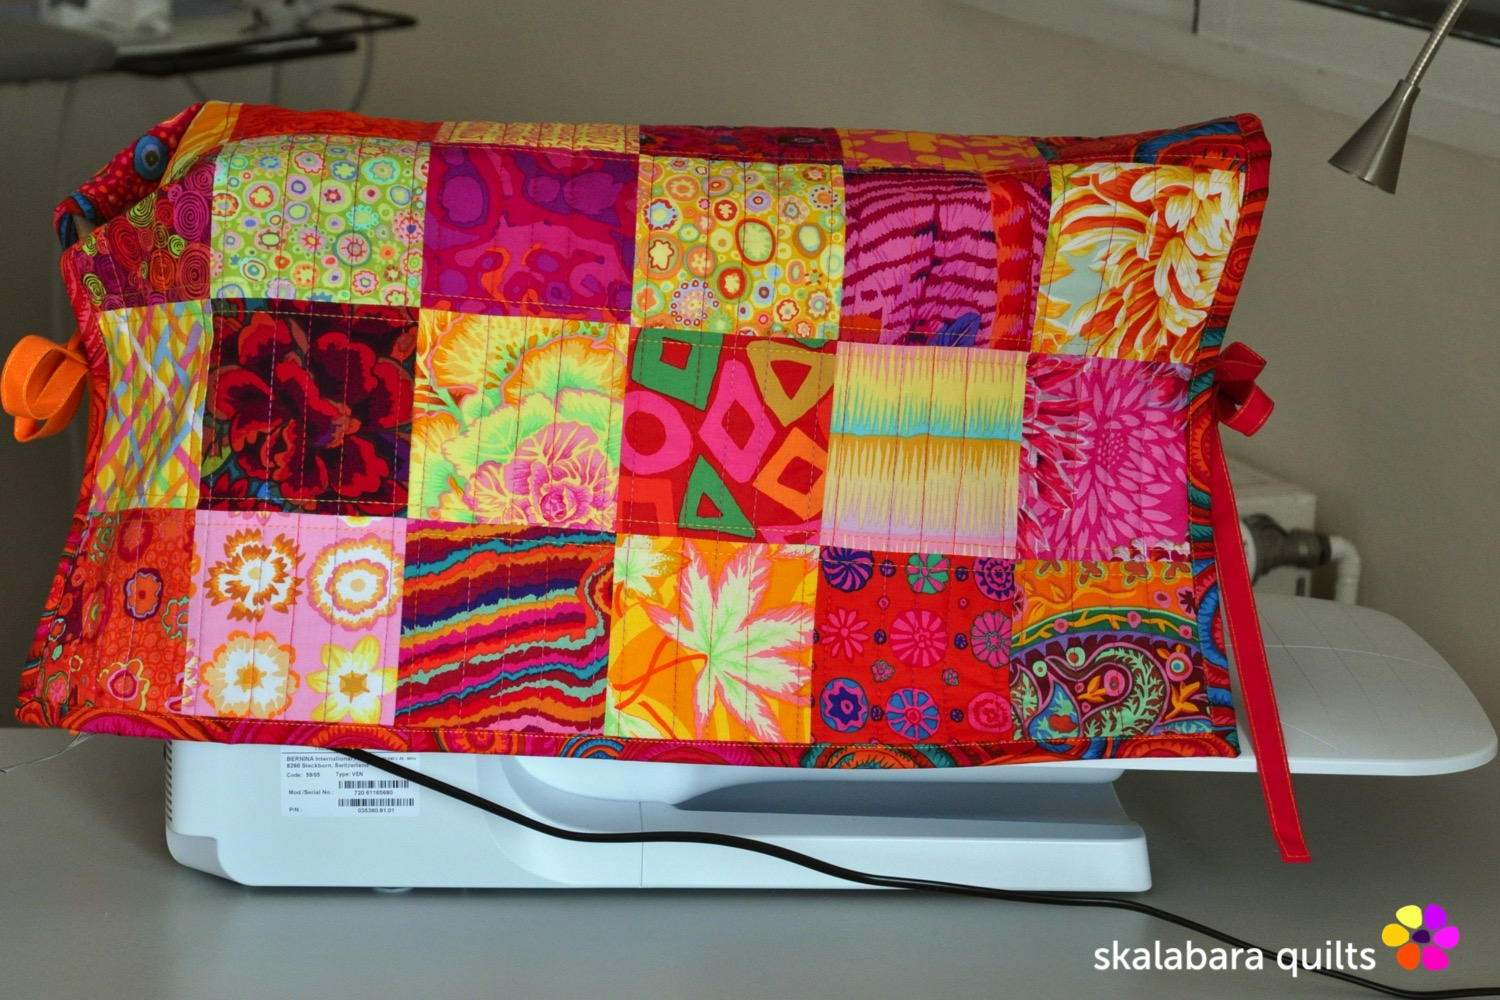 sewing machine cover 2 - skalabara quilts